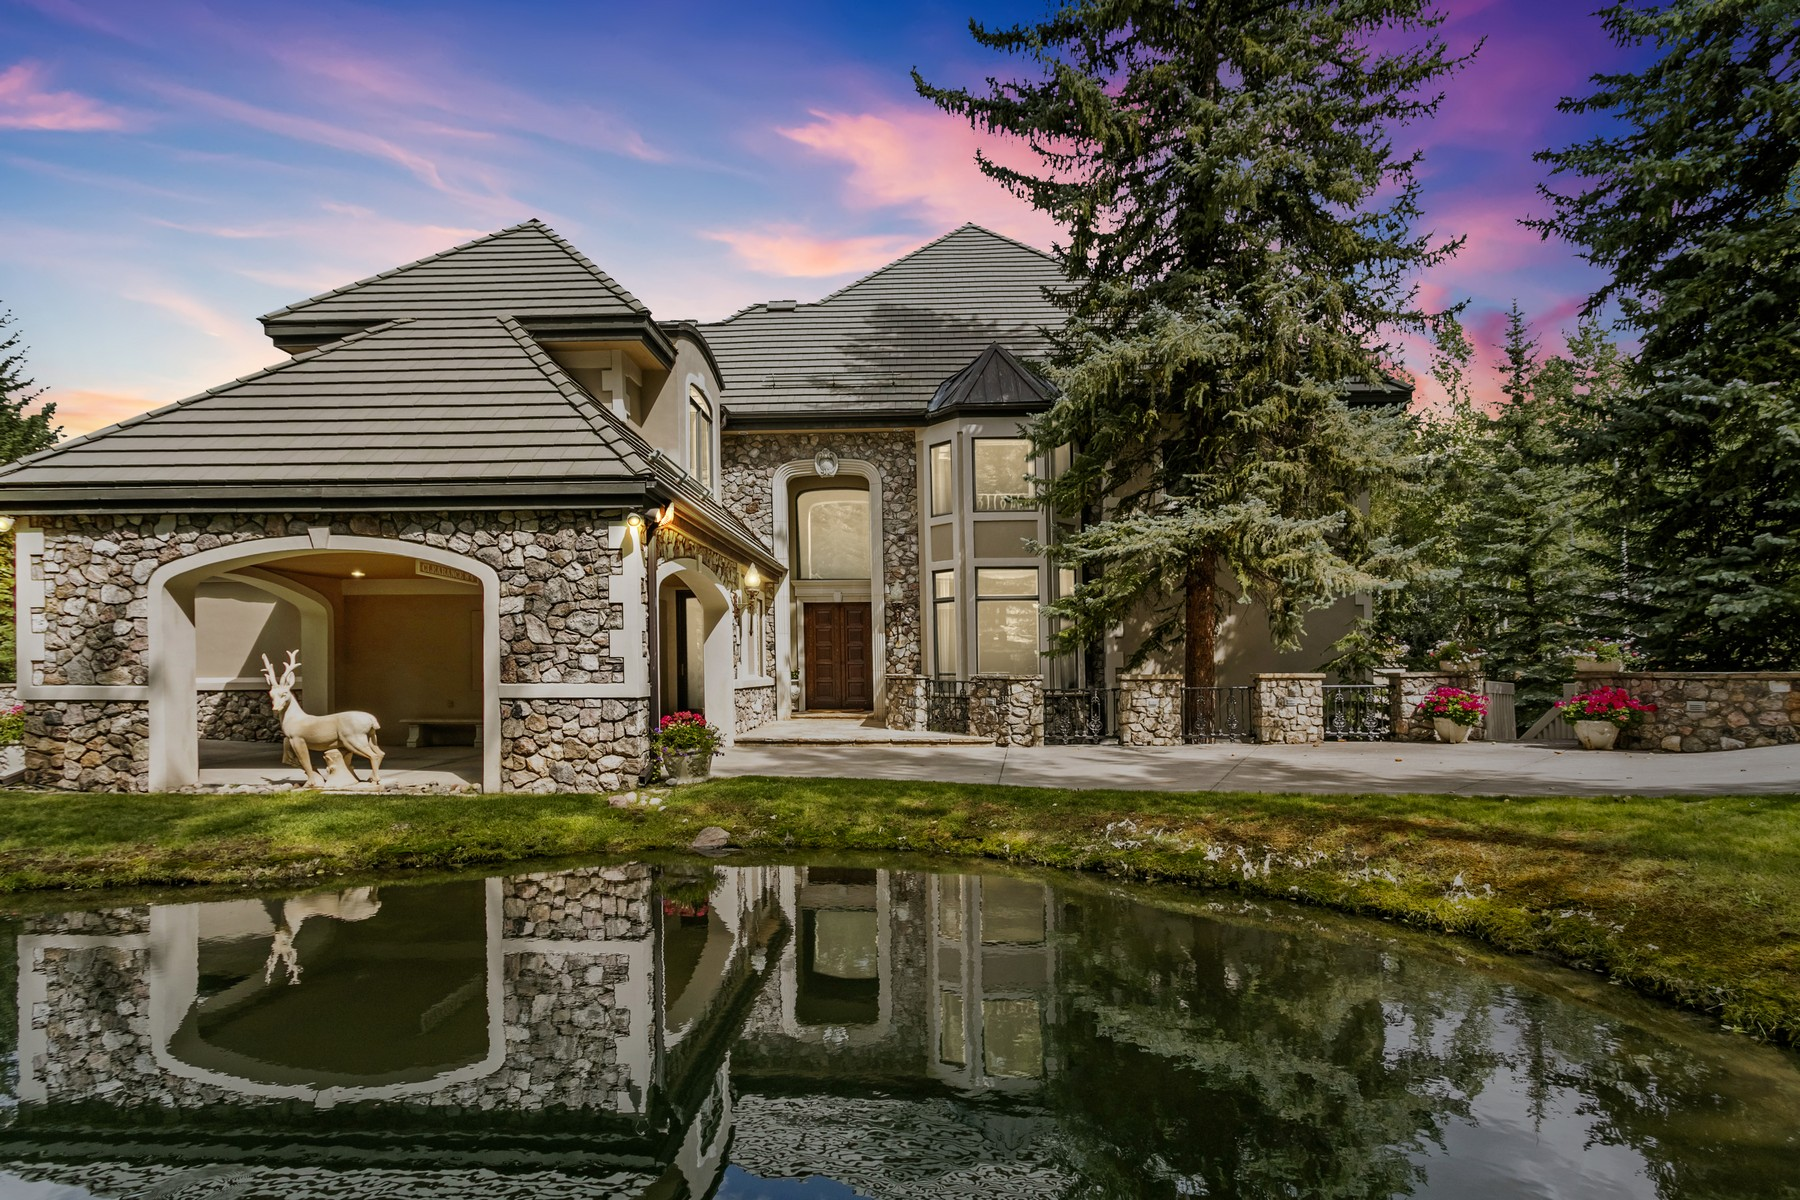 Single Family Homes for Active at European-inspired iconic home 789 Holden Road Beaver Creek, Colorado 81620 United States